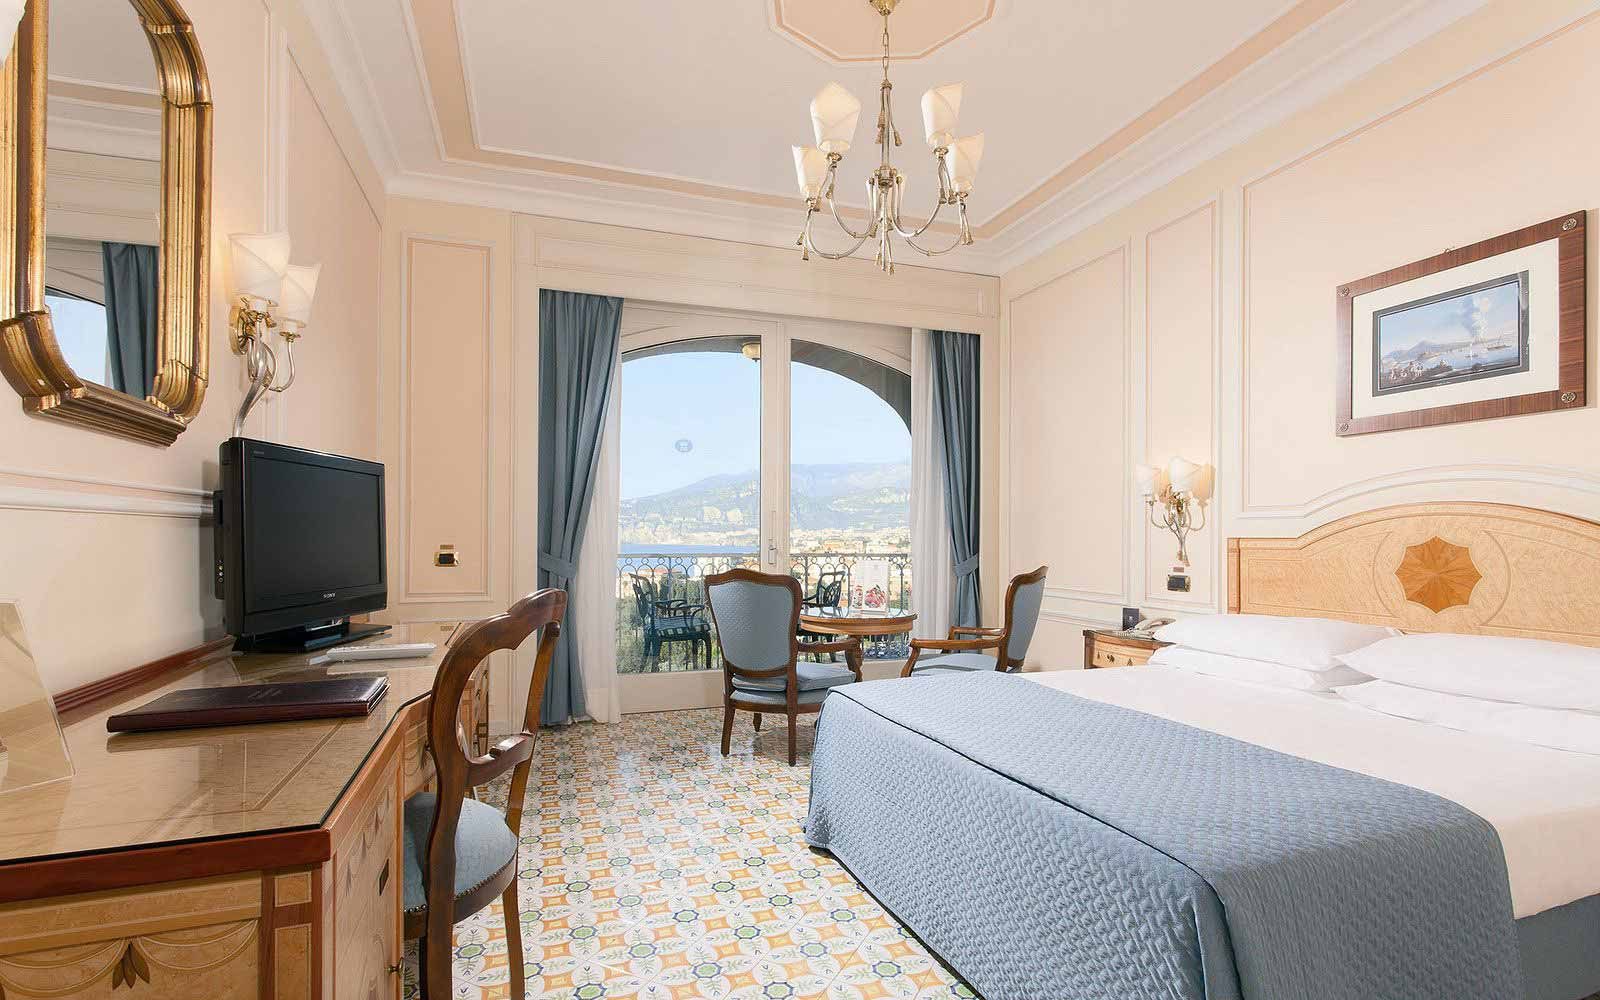 Double Room with balcony and partial seaview at the Grand Hotel Capodimonte